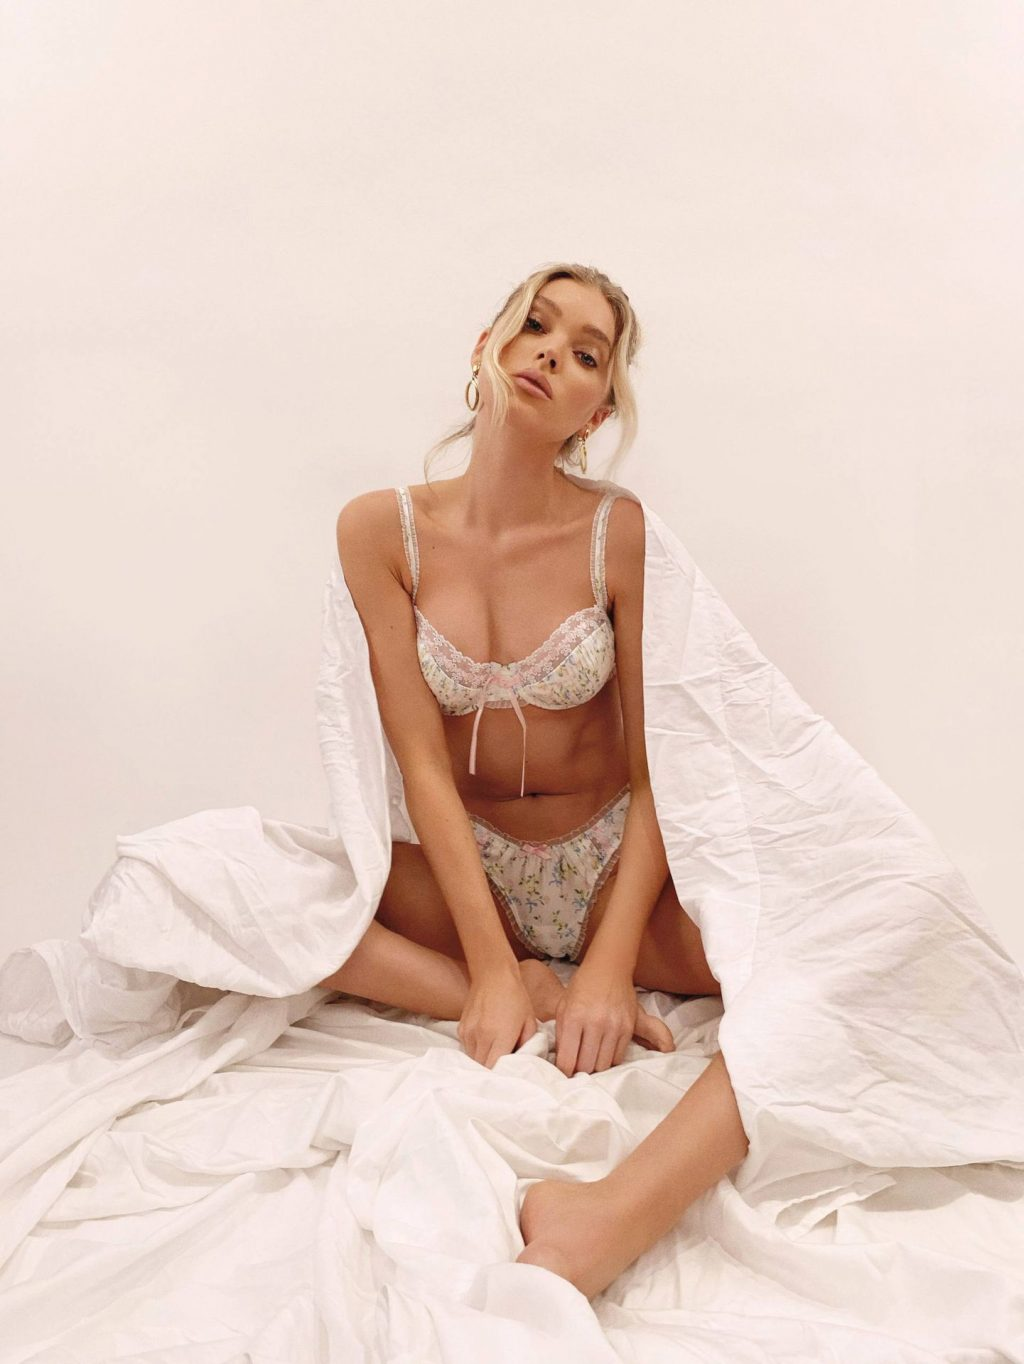 Elsa Hosk Shows Off her Body in a New Advertising Campaign (18 Photos)